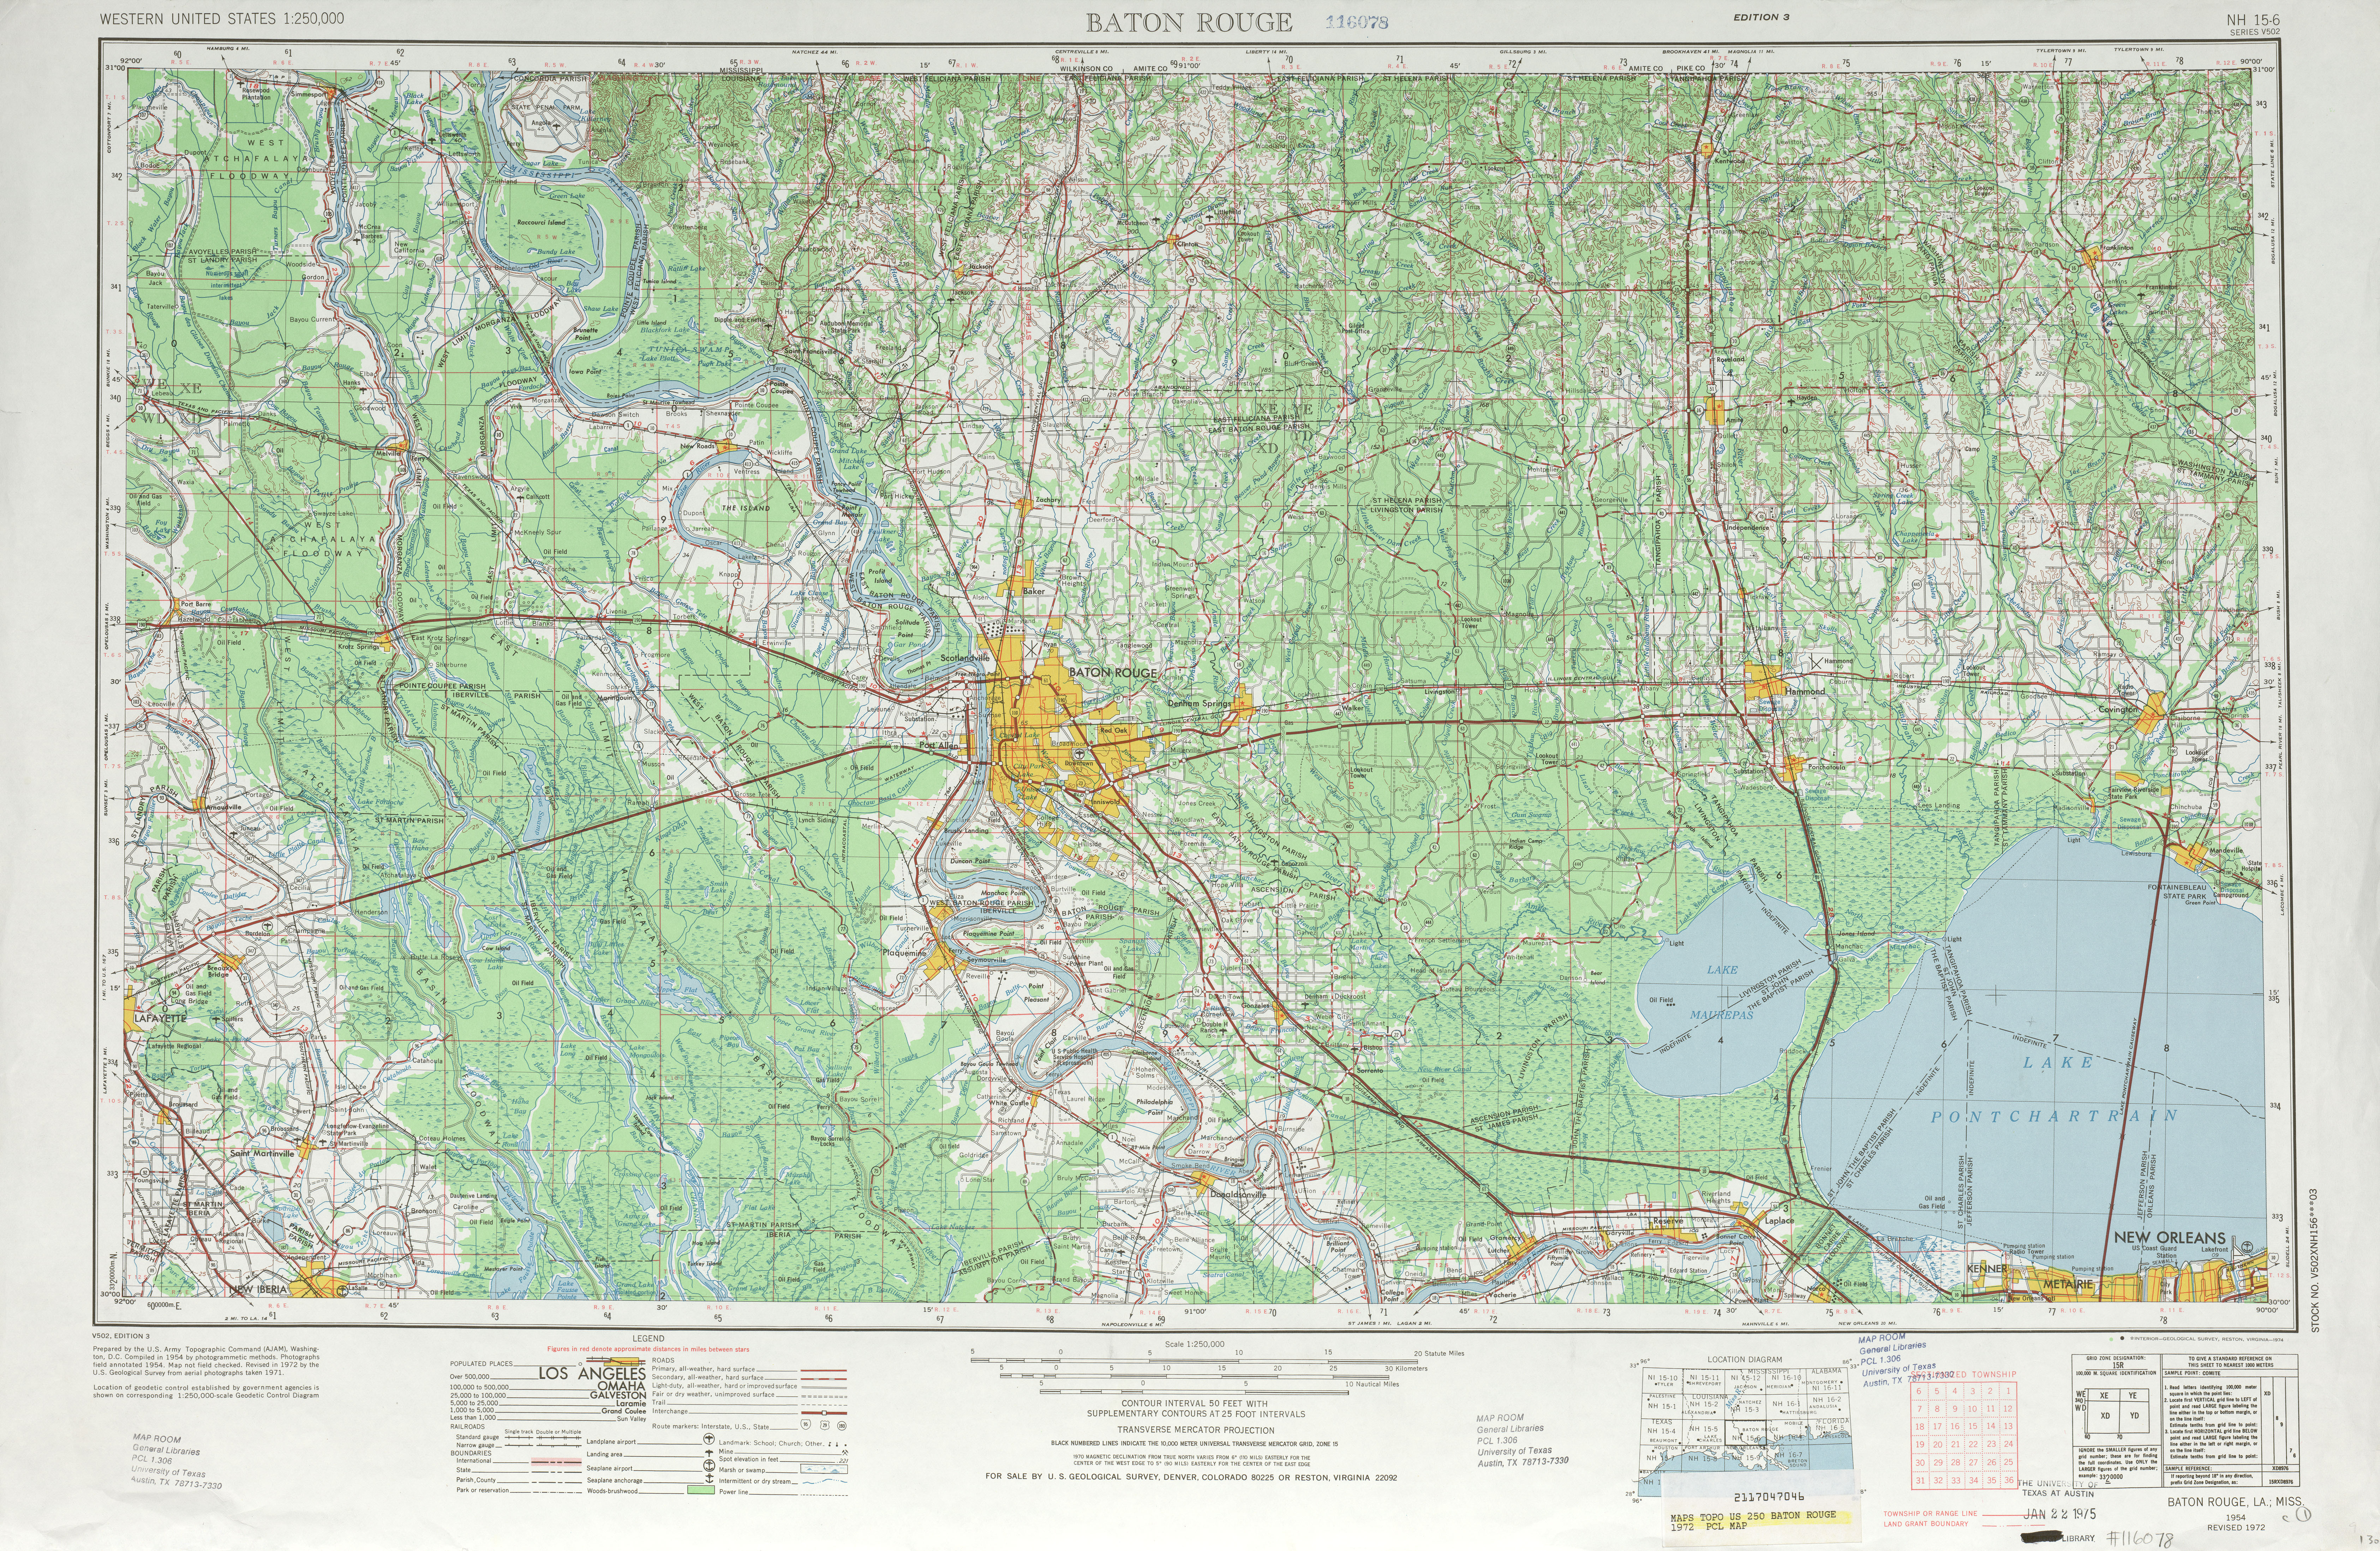 Shaded Relief Maps Of The United States Topographic Maps Finding - Us topographic map elevations